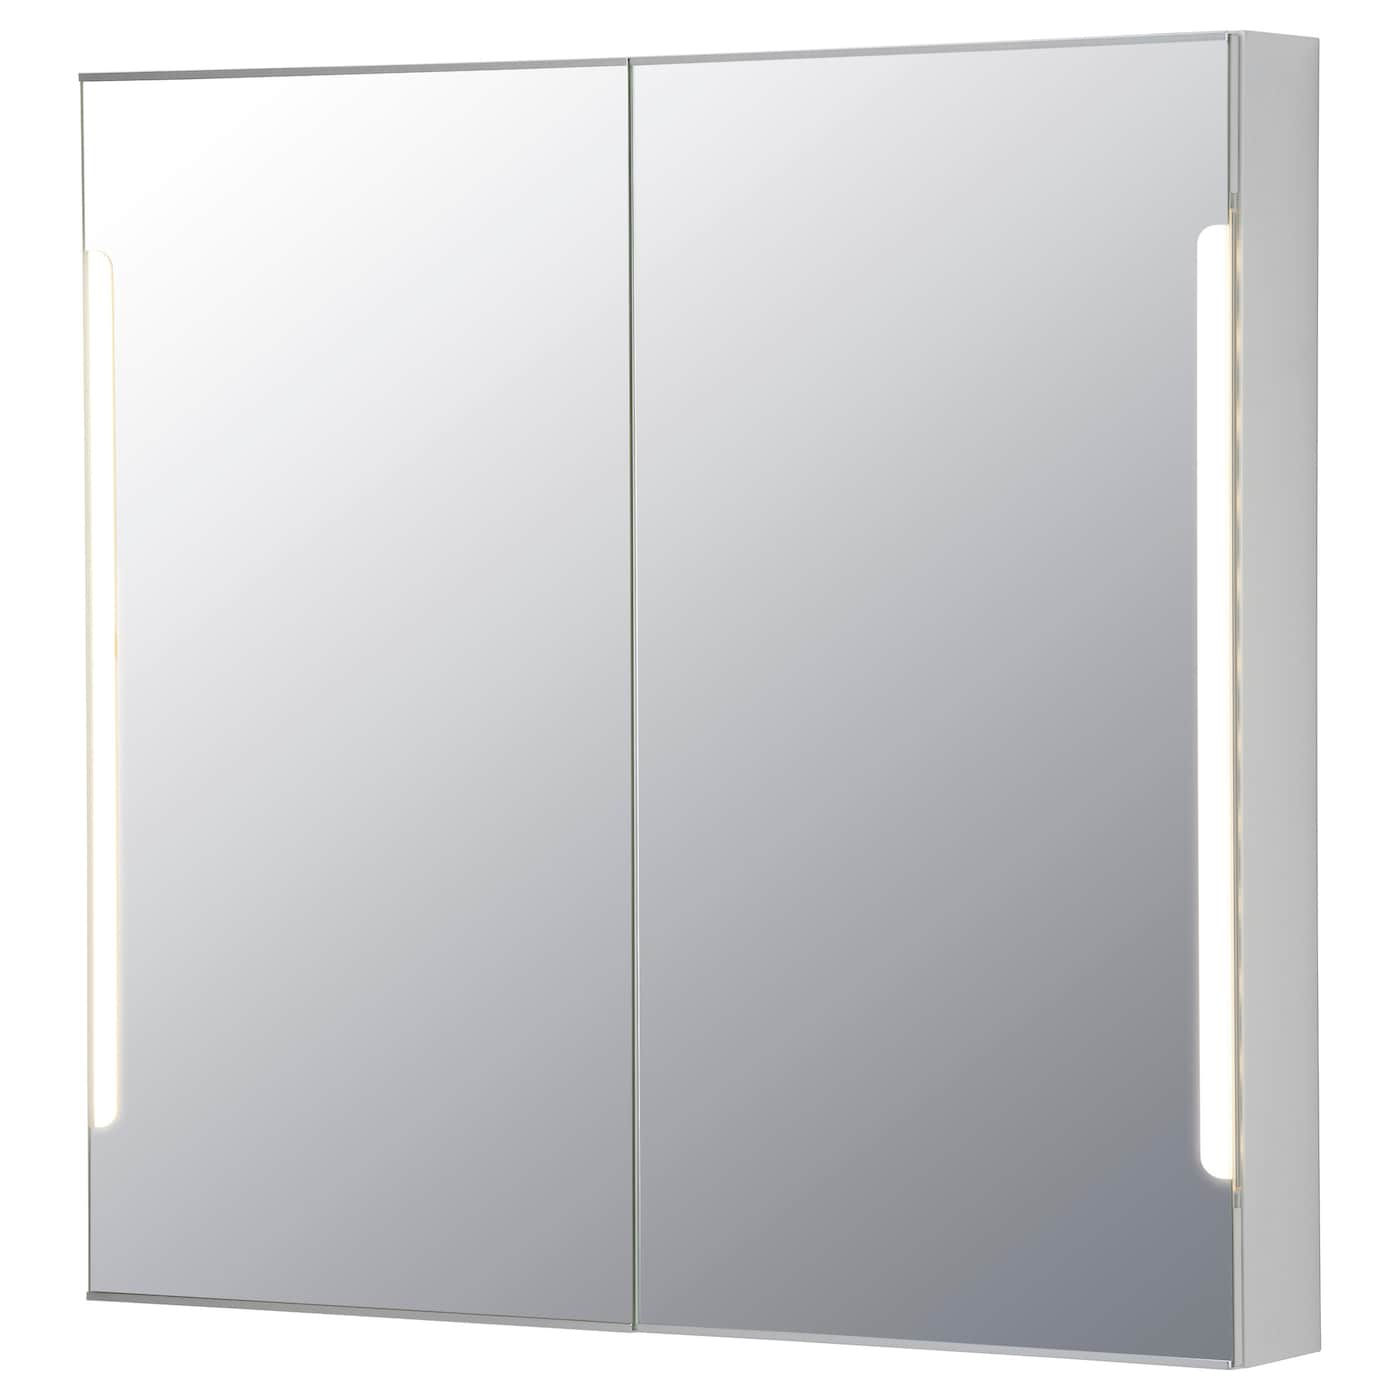 ikea storjorm mirror cab 2 door built in lighting